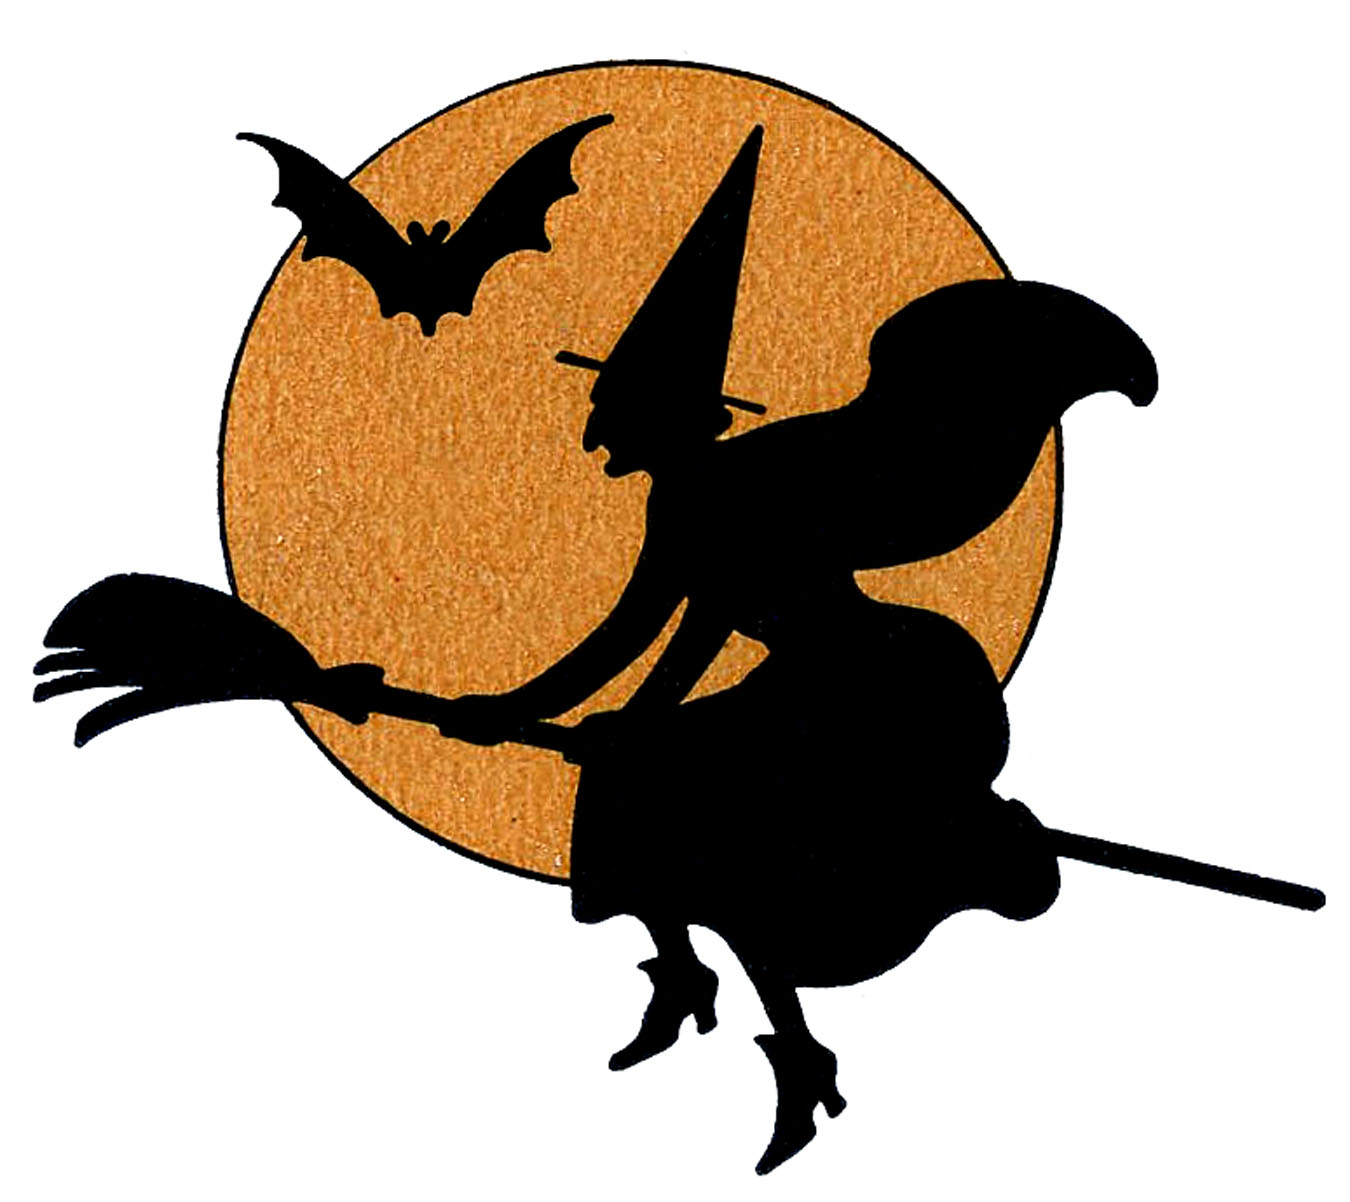 1350x1202 Moon Clipart Halloween Free Collection Download And Share Moon